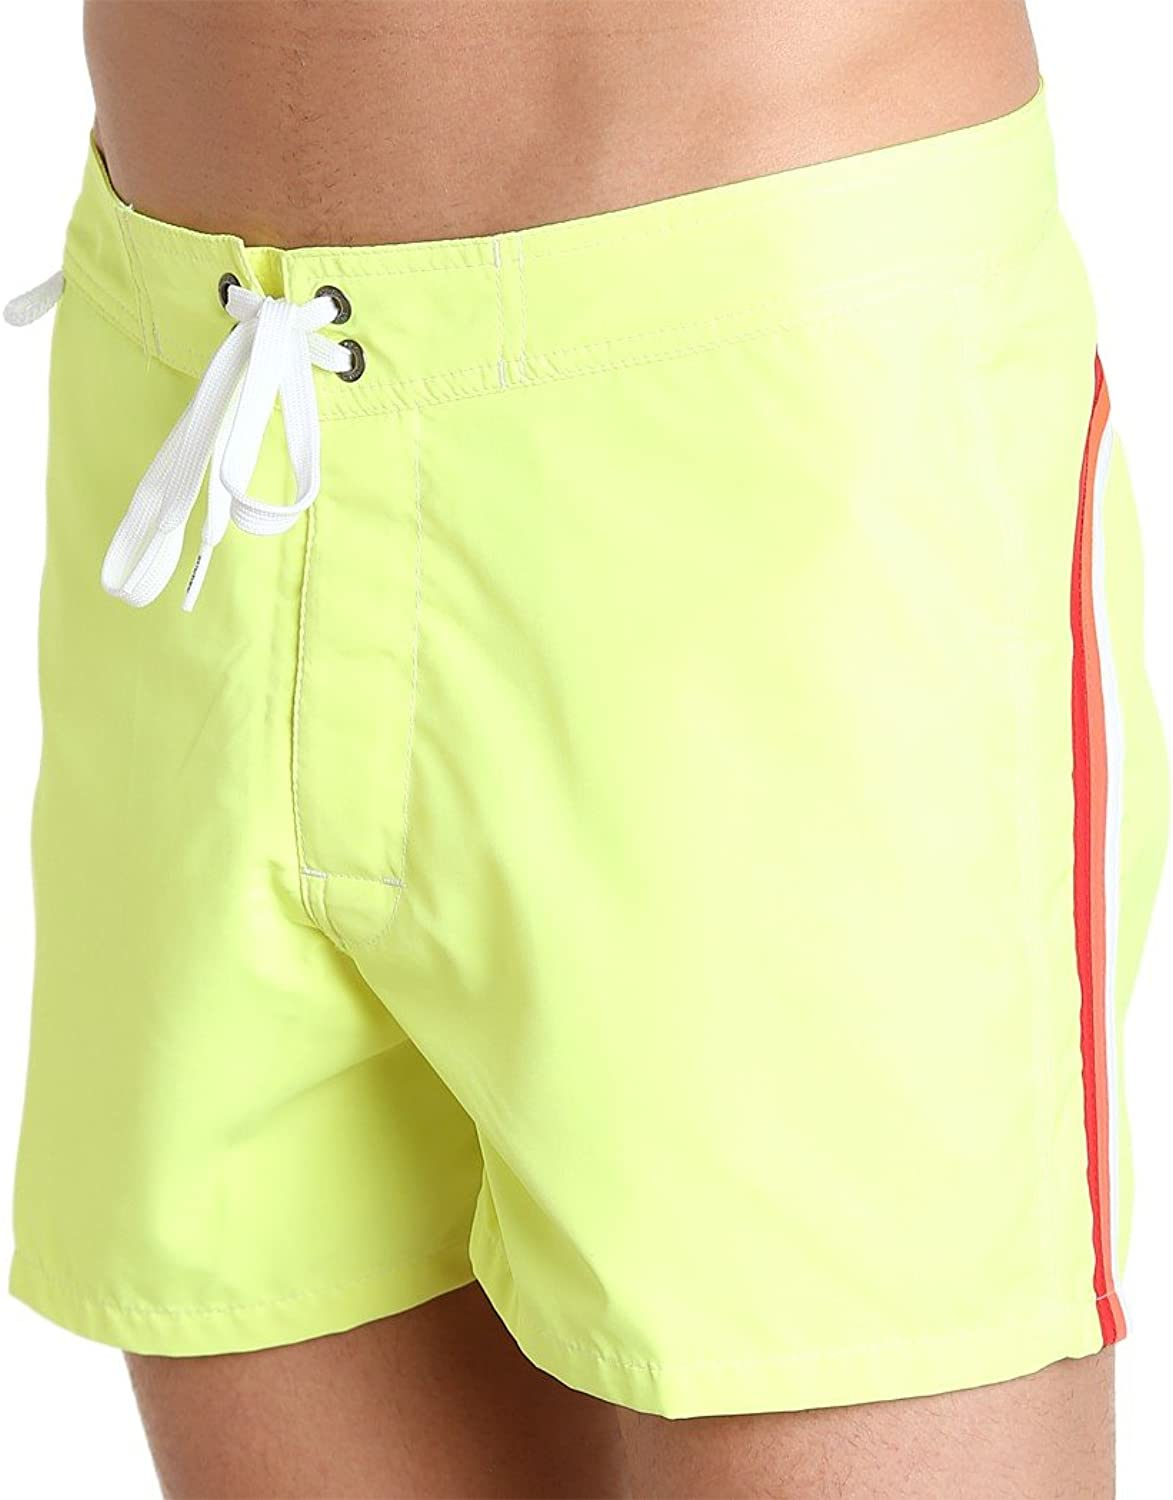 5a1ff73886 Sundek 14 Classic Low-Rise Boardshort Wow Wow Wow 8 0252cf - mantle ...